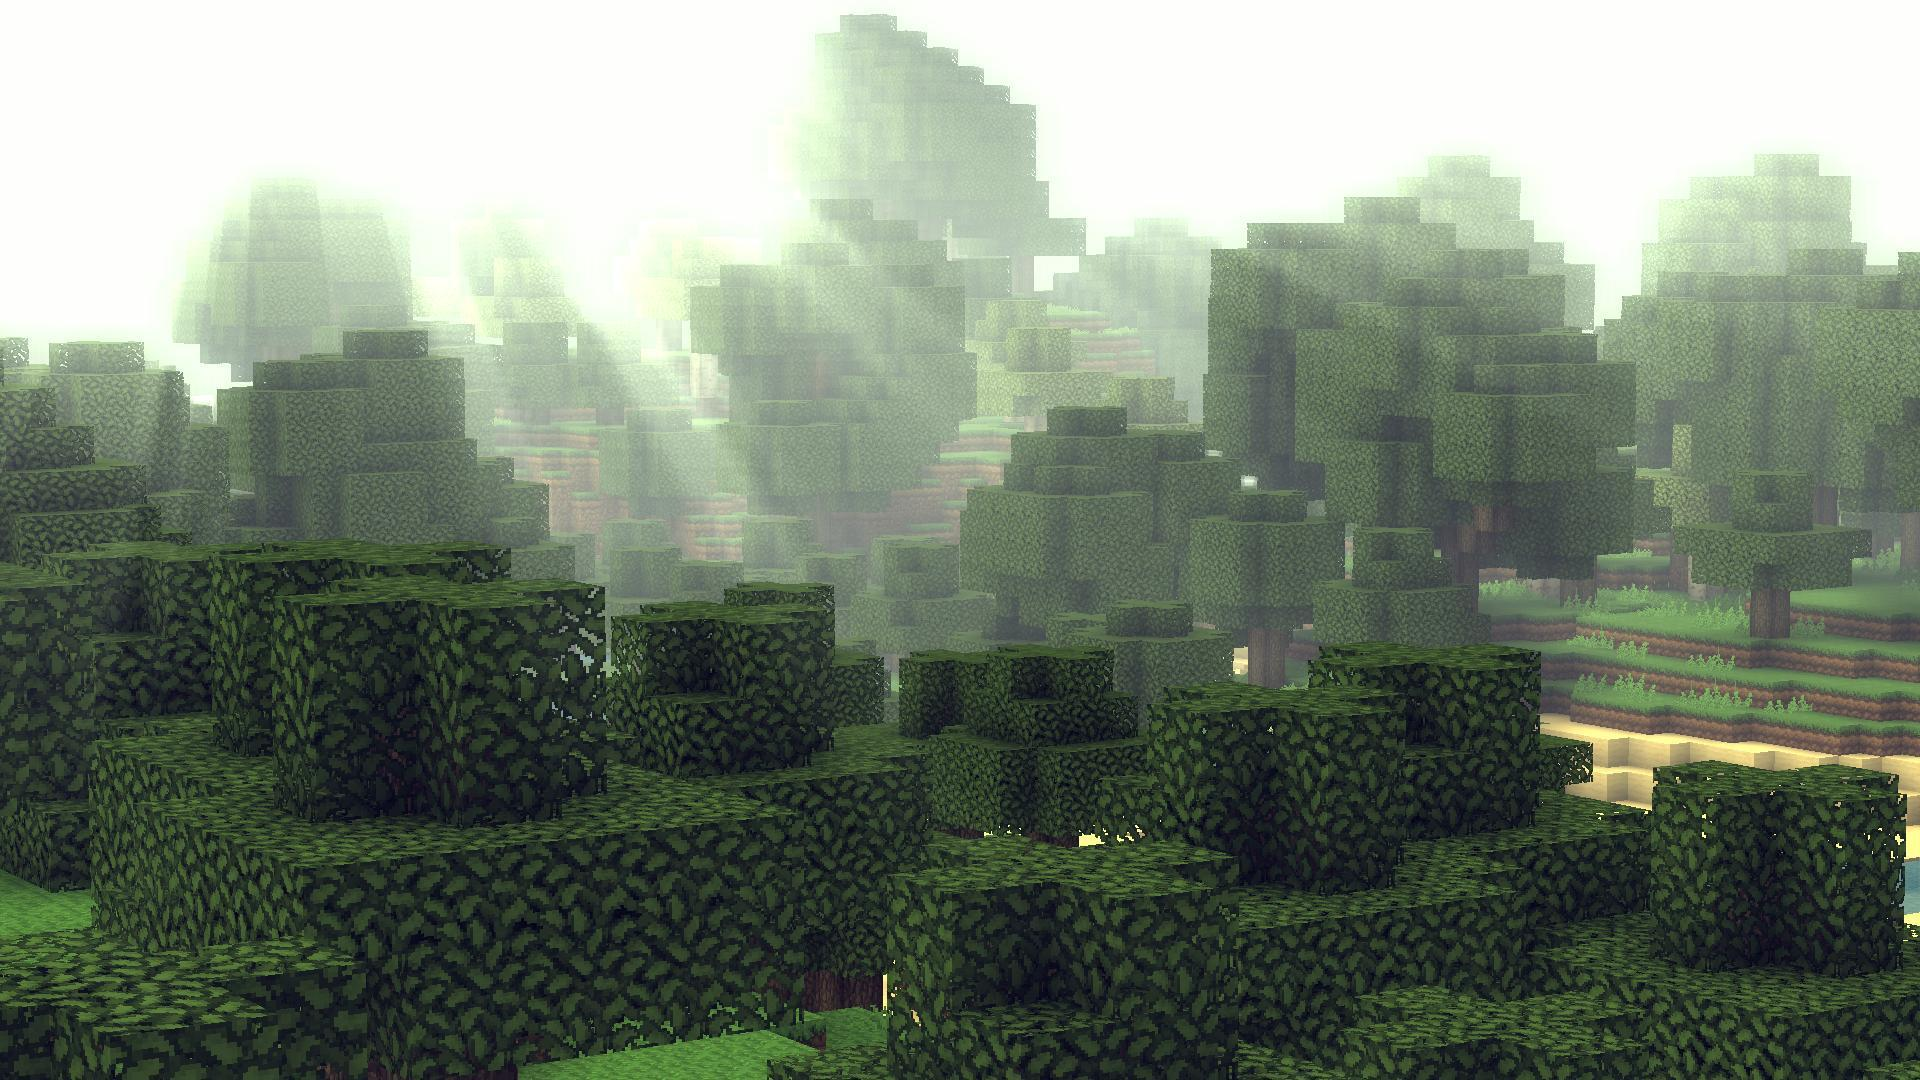 wallpaper hd minecraft green - photo #31